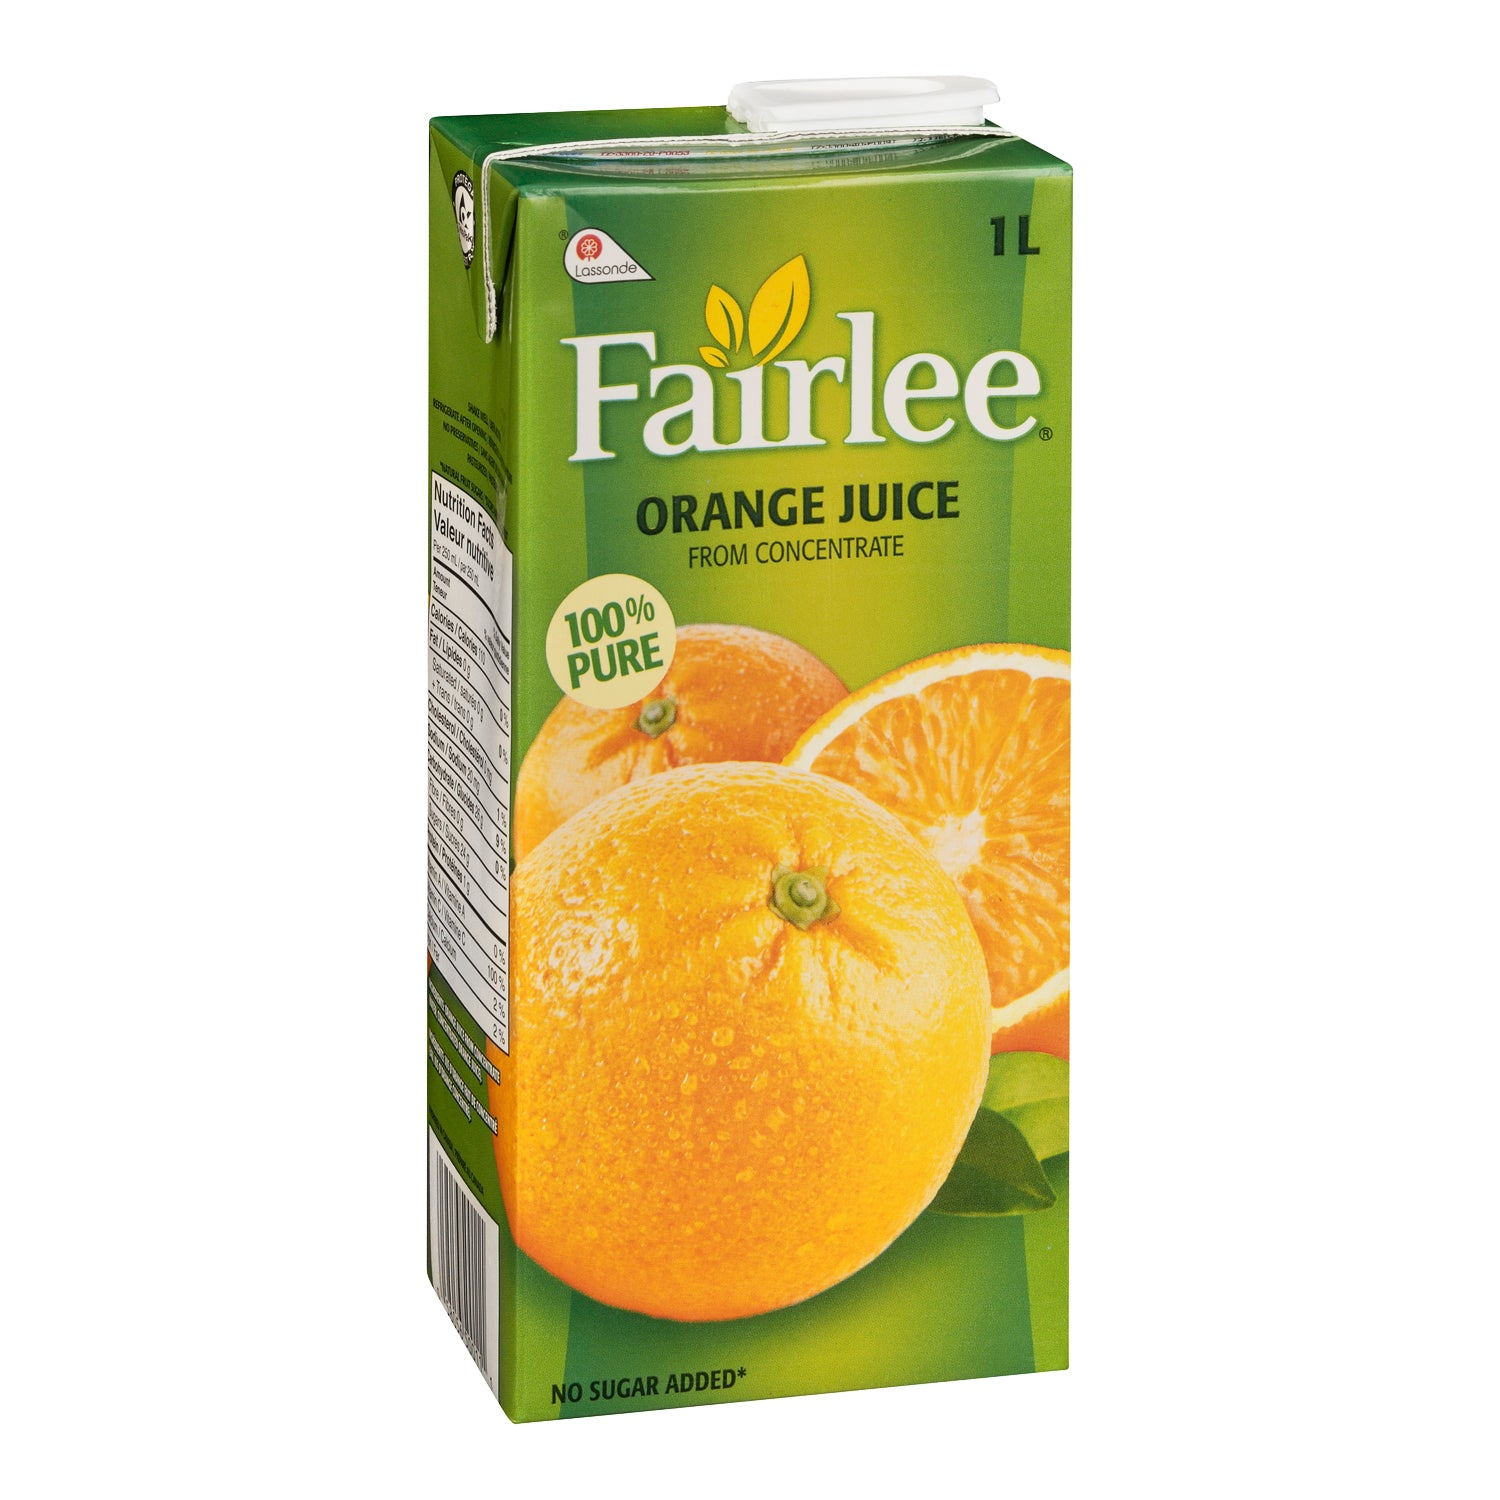 Fairlee Orange Juice Tetra Pack 1 L - 12 Pack [$1.79/each]